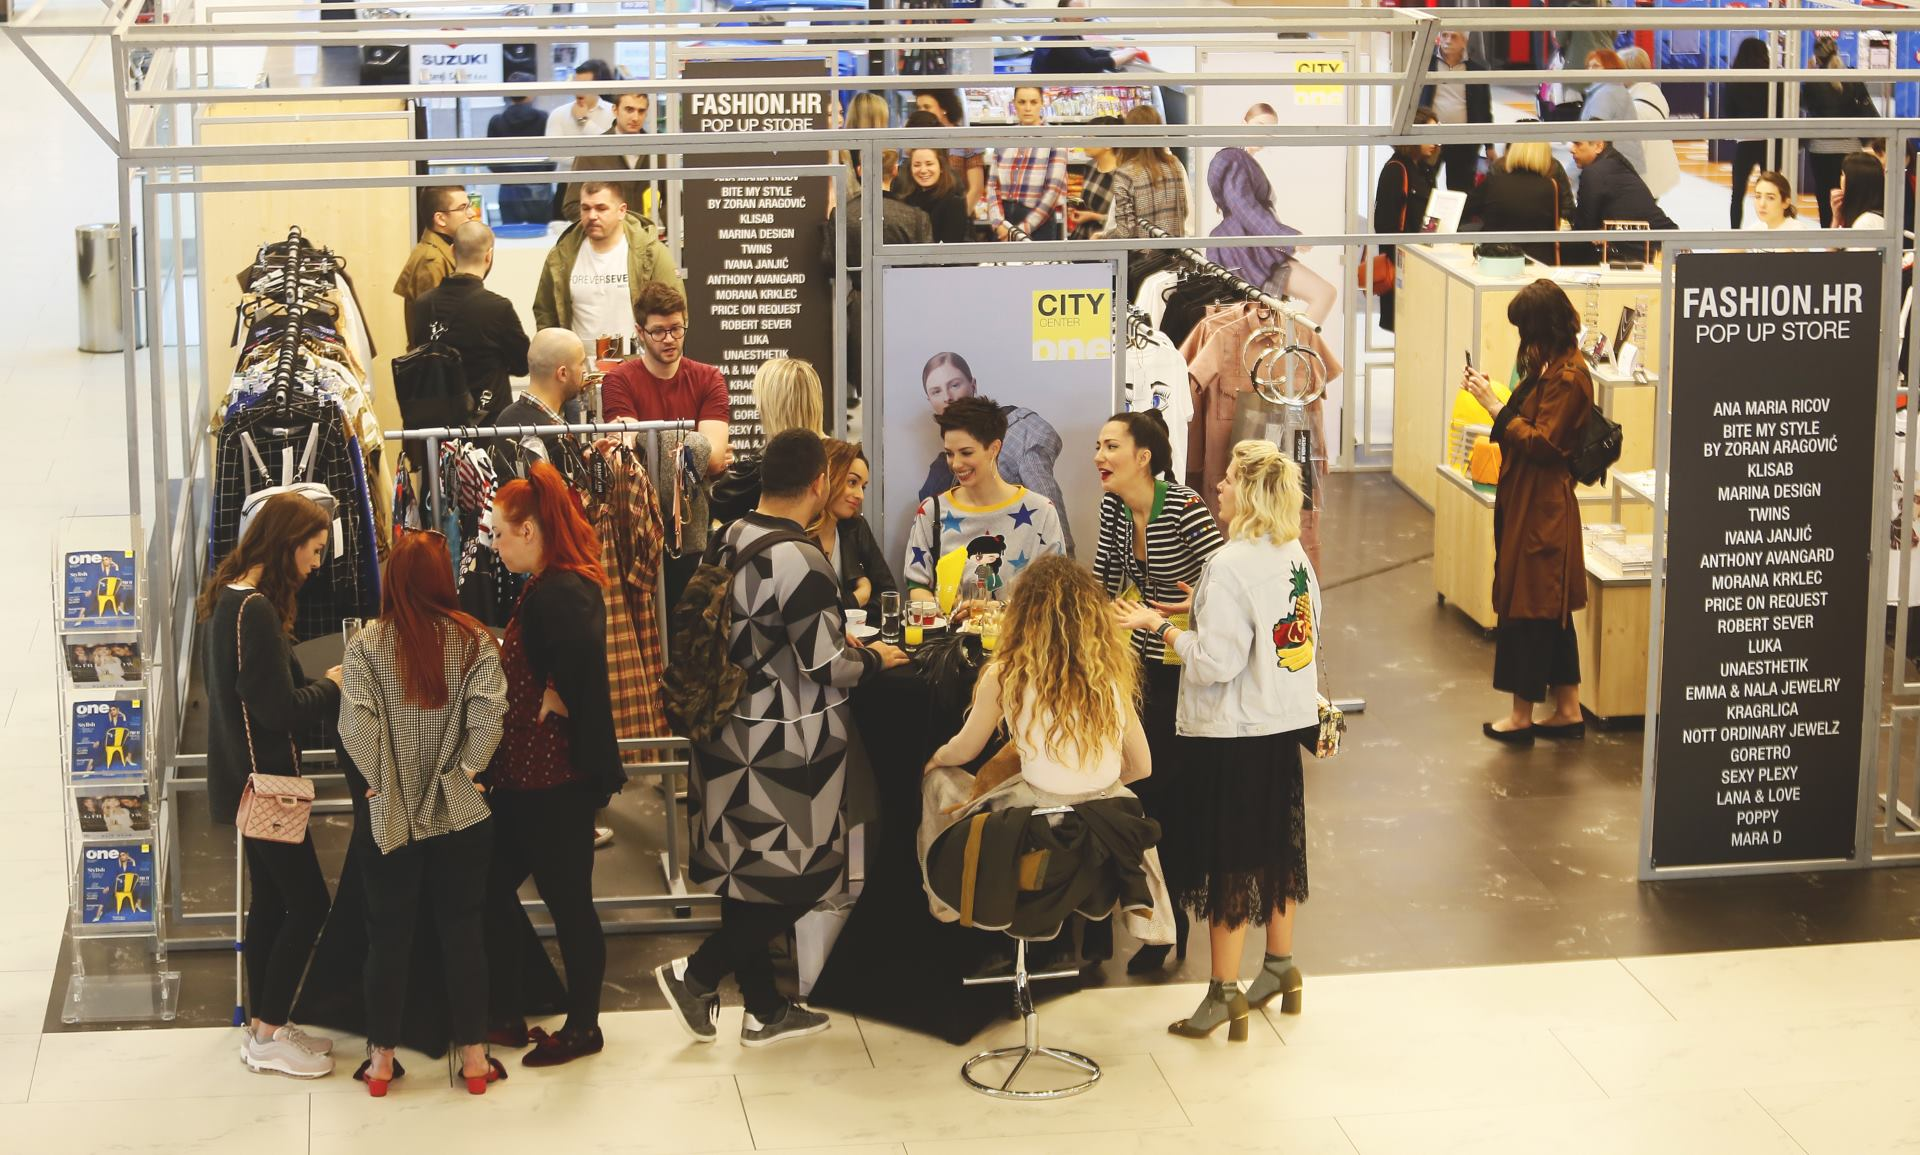 FOTO: Otvoren jedinstveni koncept butik – FASHION.HR pop up store